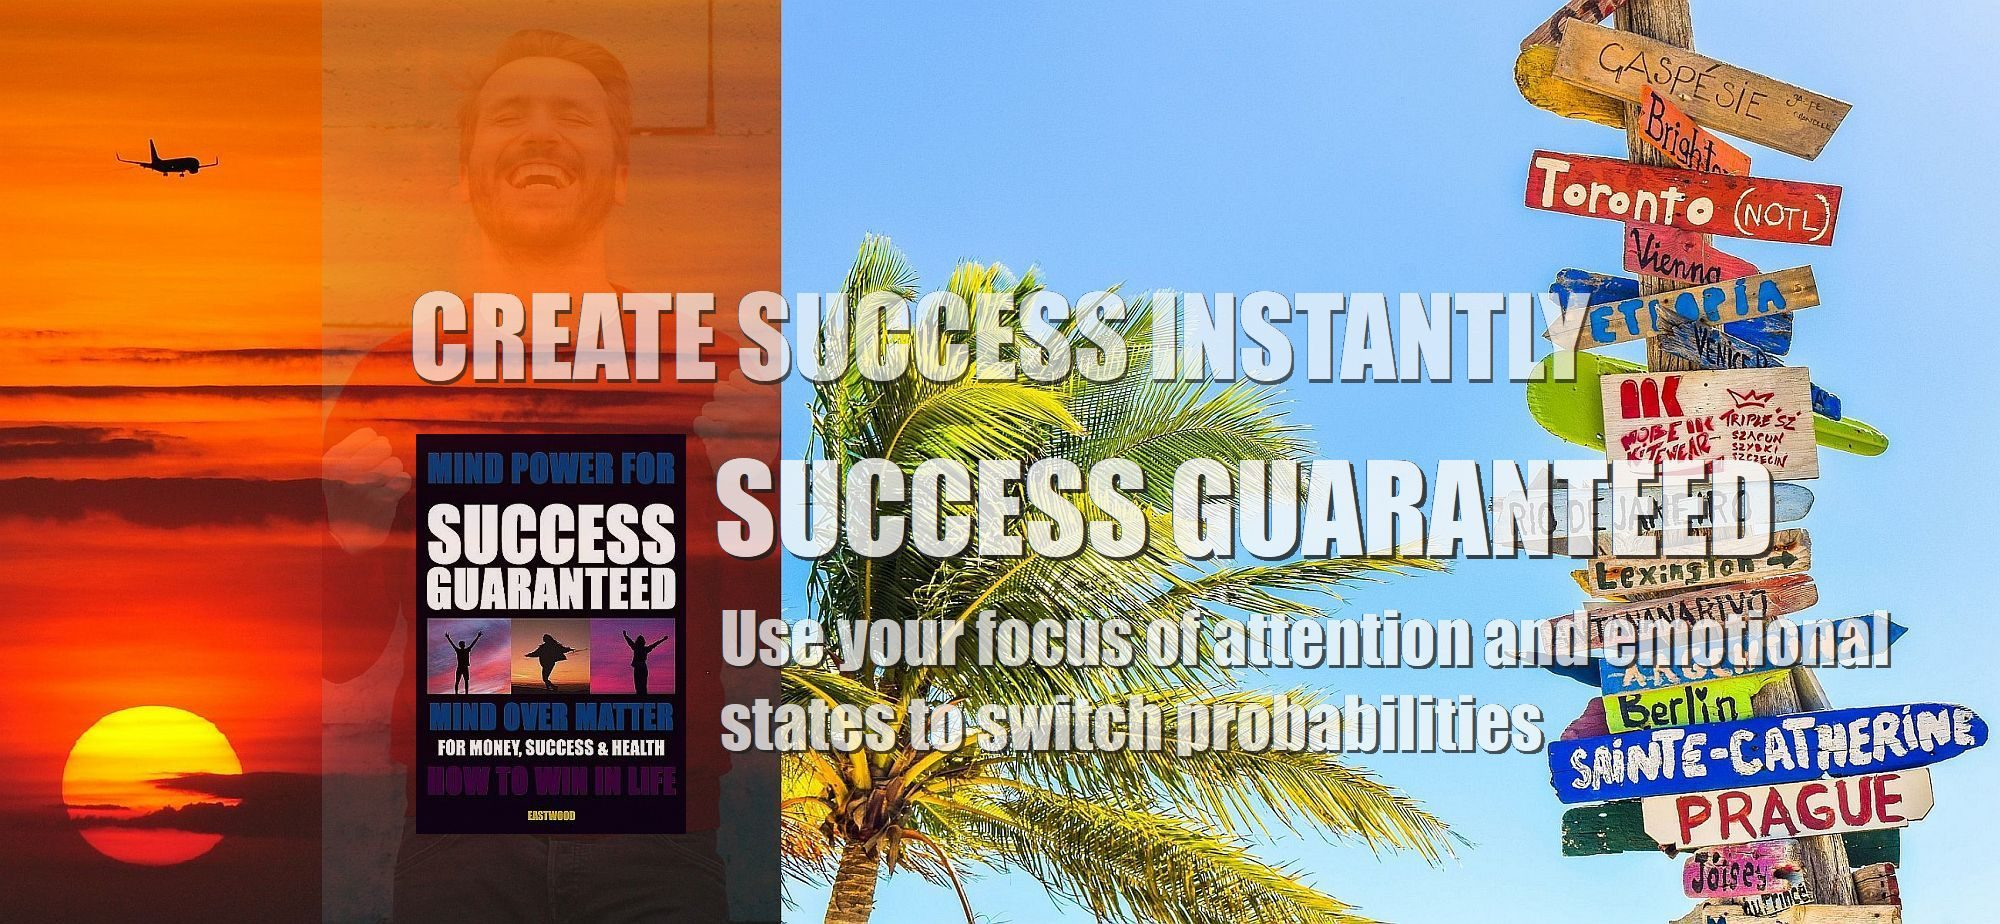 create-success-instantly-how-do-i-use-my-mind-over-matter-mind-power-to-succeed-make-money-2000